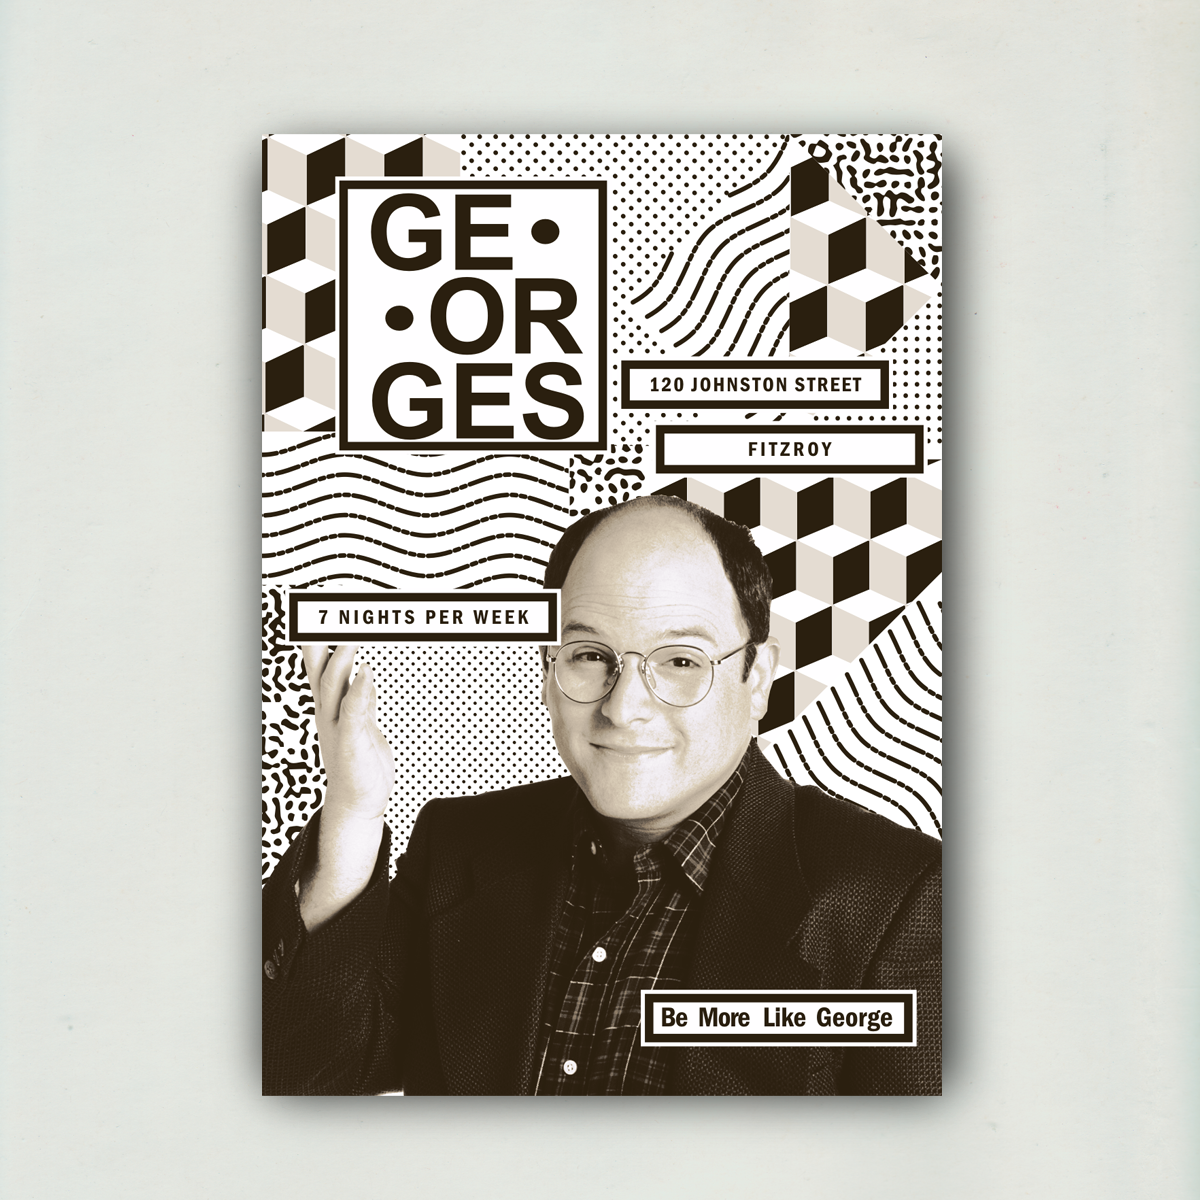 Georges Bar - A0 Poster - BNW - Upload 3